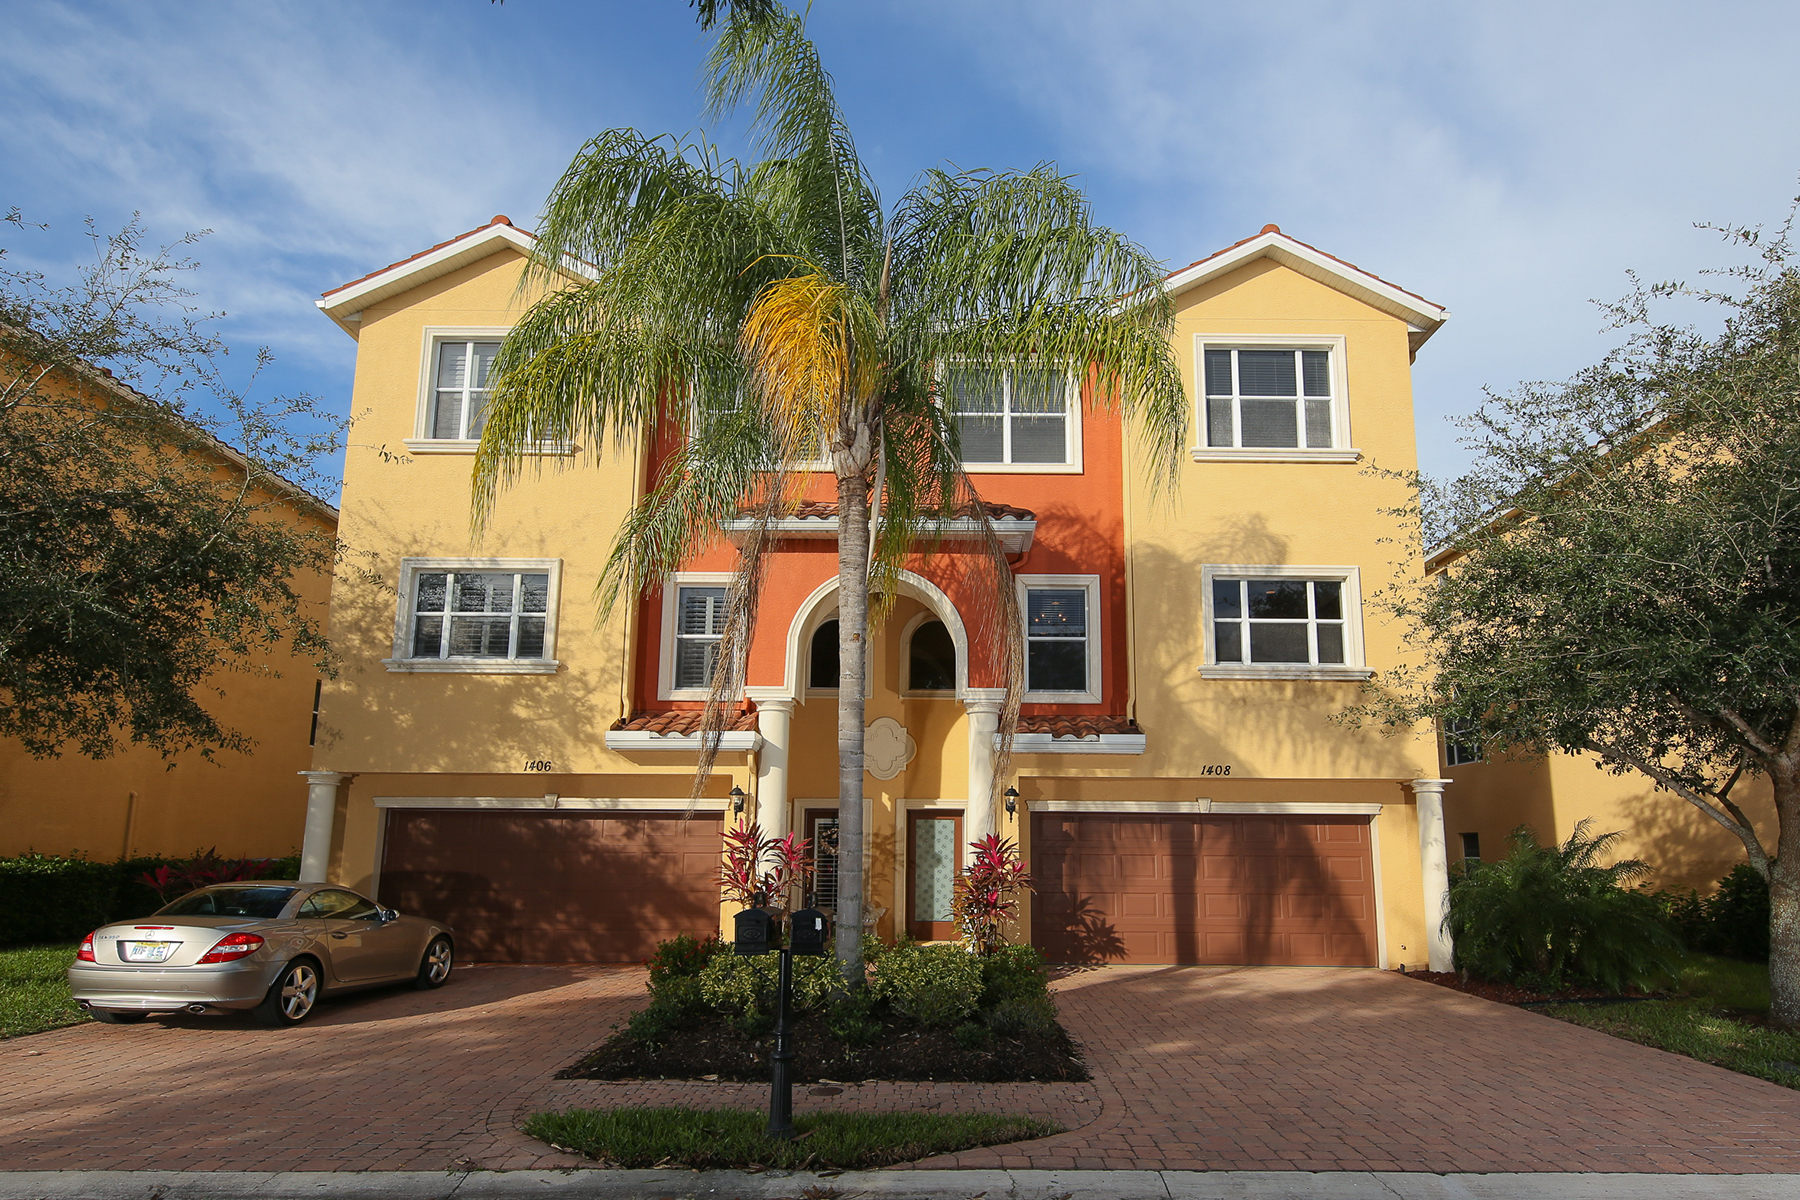 Townhouse for Sale at HAMMOCKS AT RIVIERA DUNES 1408 3rd Street Cir E Palmetto, Florida, 34221 United States